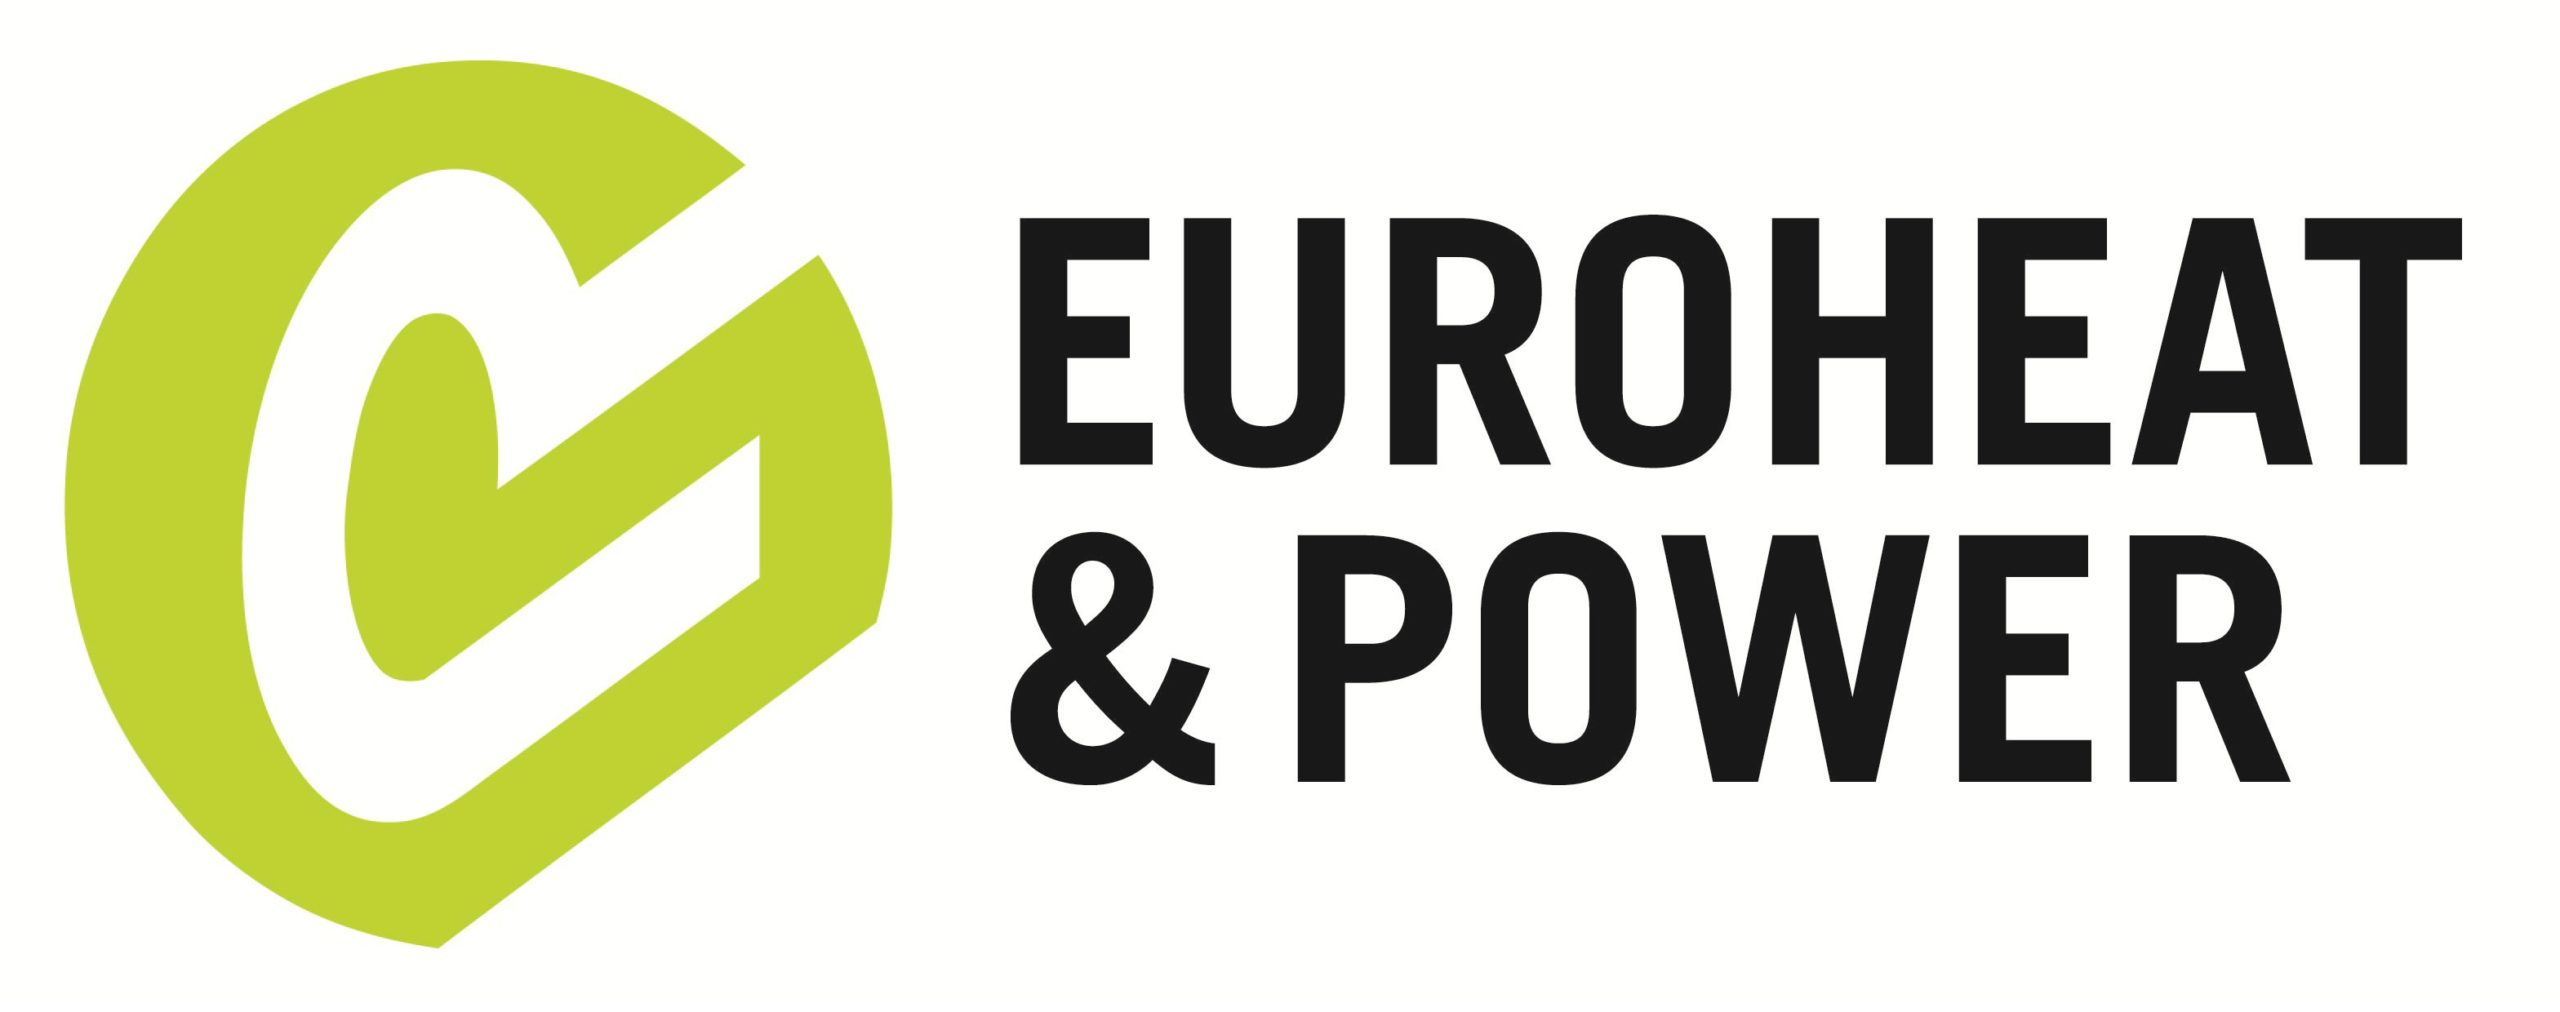 Tuesday 7 April 2015 Paul Voss and Euroheat & Power wish a happy birthday to Energy Cities! | Energy Cities